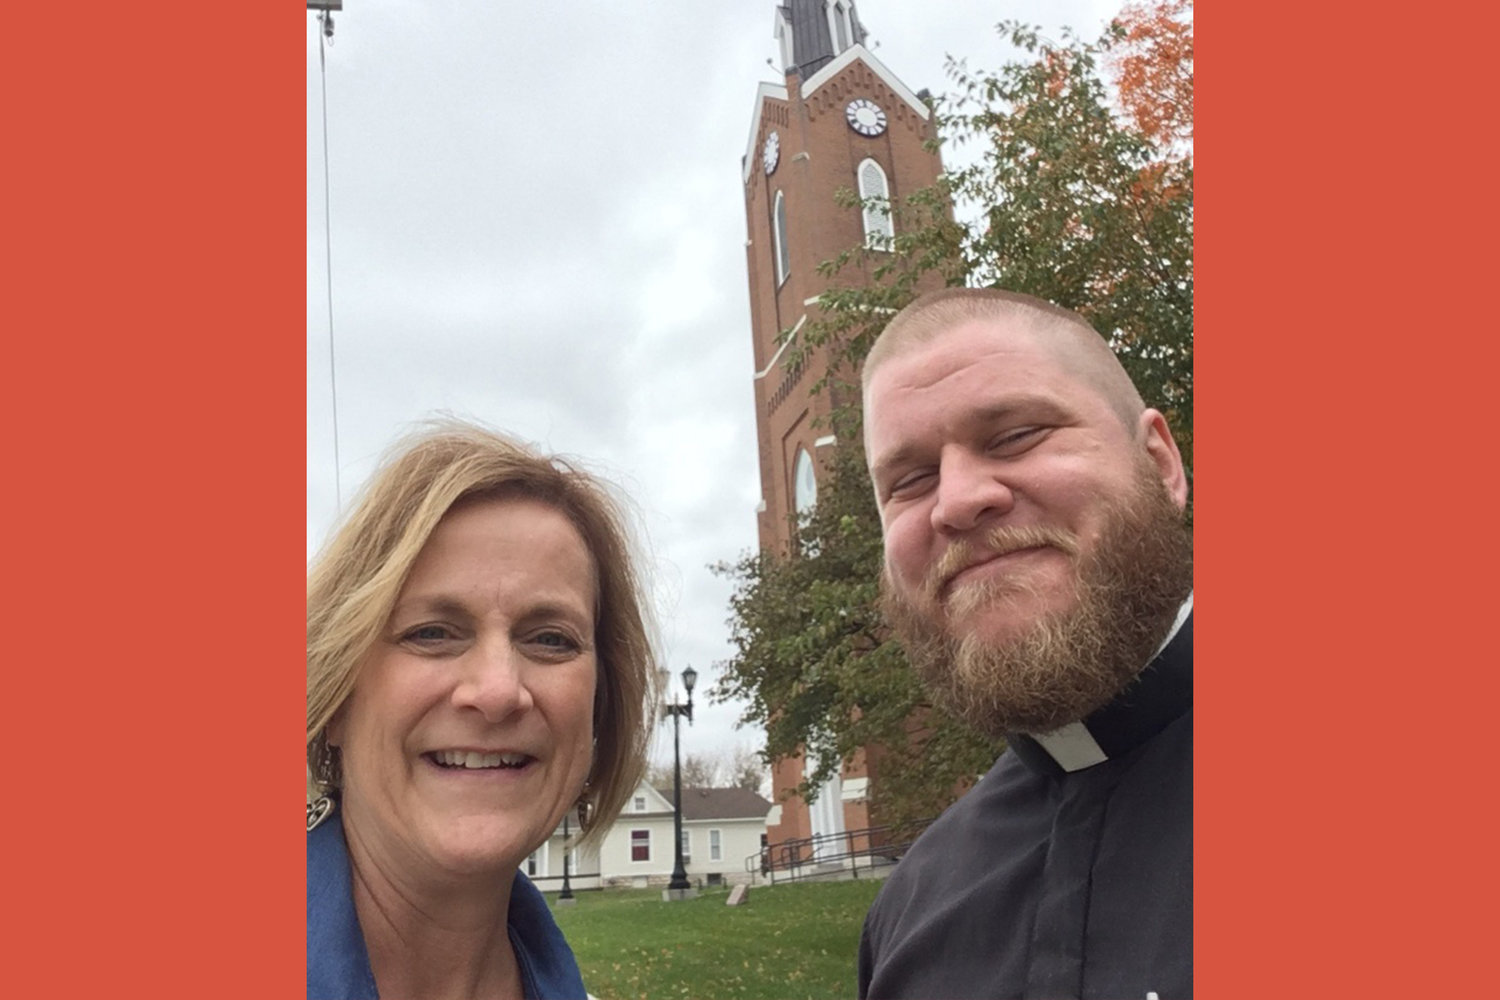 Kimie Bax, priest wellness coordinator for the Jefferson City diocese, visits with Father Colin Franklin, pastor of St. Joseph parish in Edina and the St. Aloysius mission in Baring and chaplain of the Catholic Newman Center in Kirksville, outside St. Joseph Church in Edina.